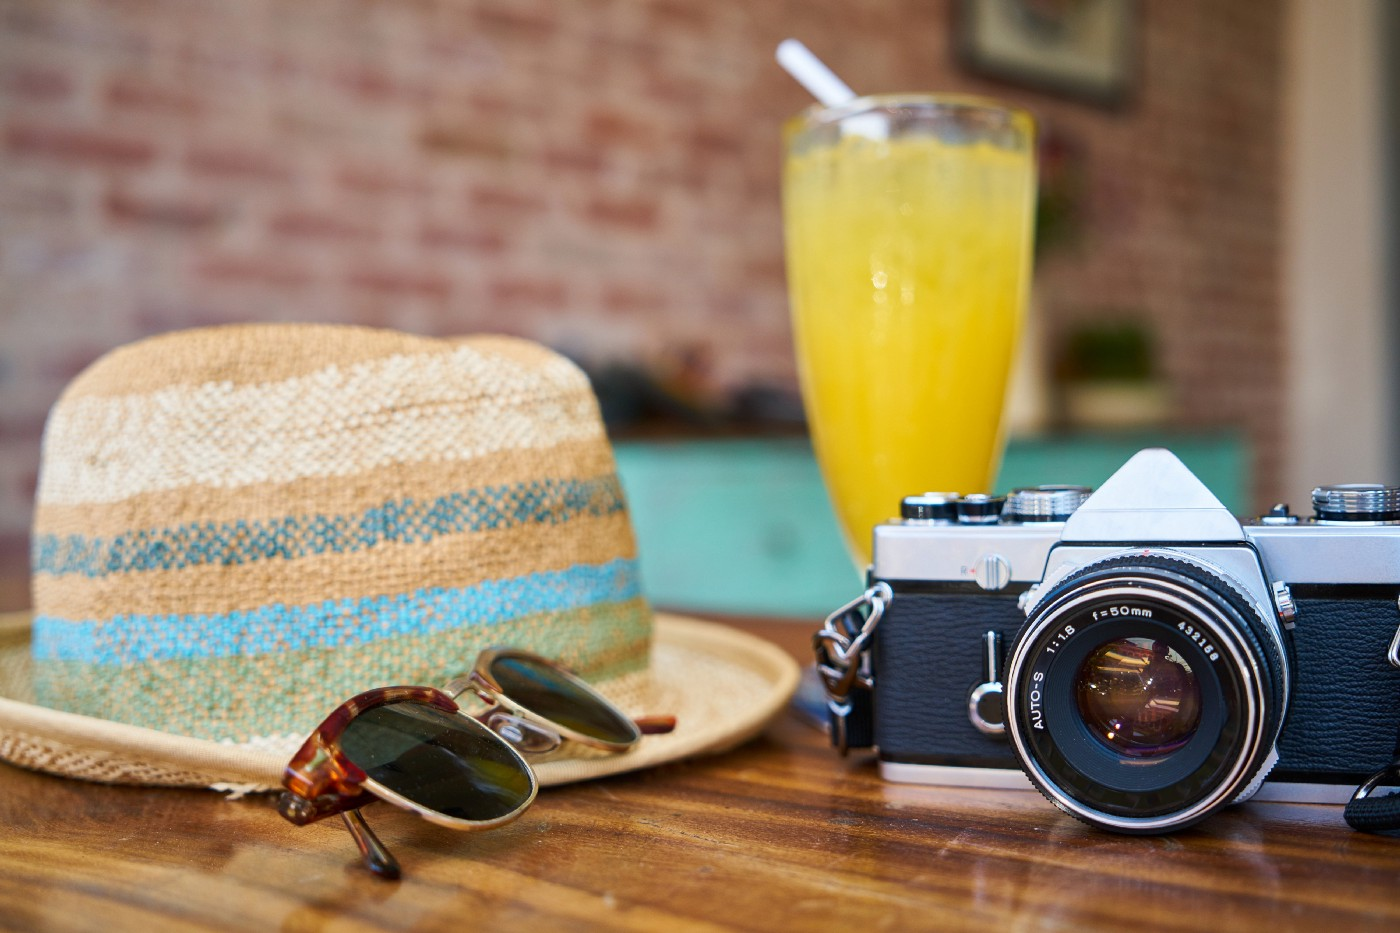 Take a vacation this year and don't feel guilty about it